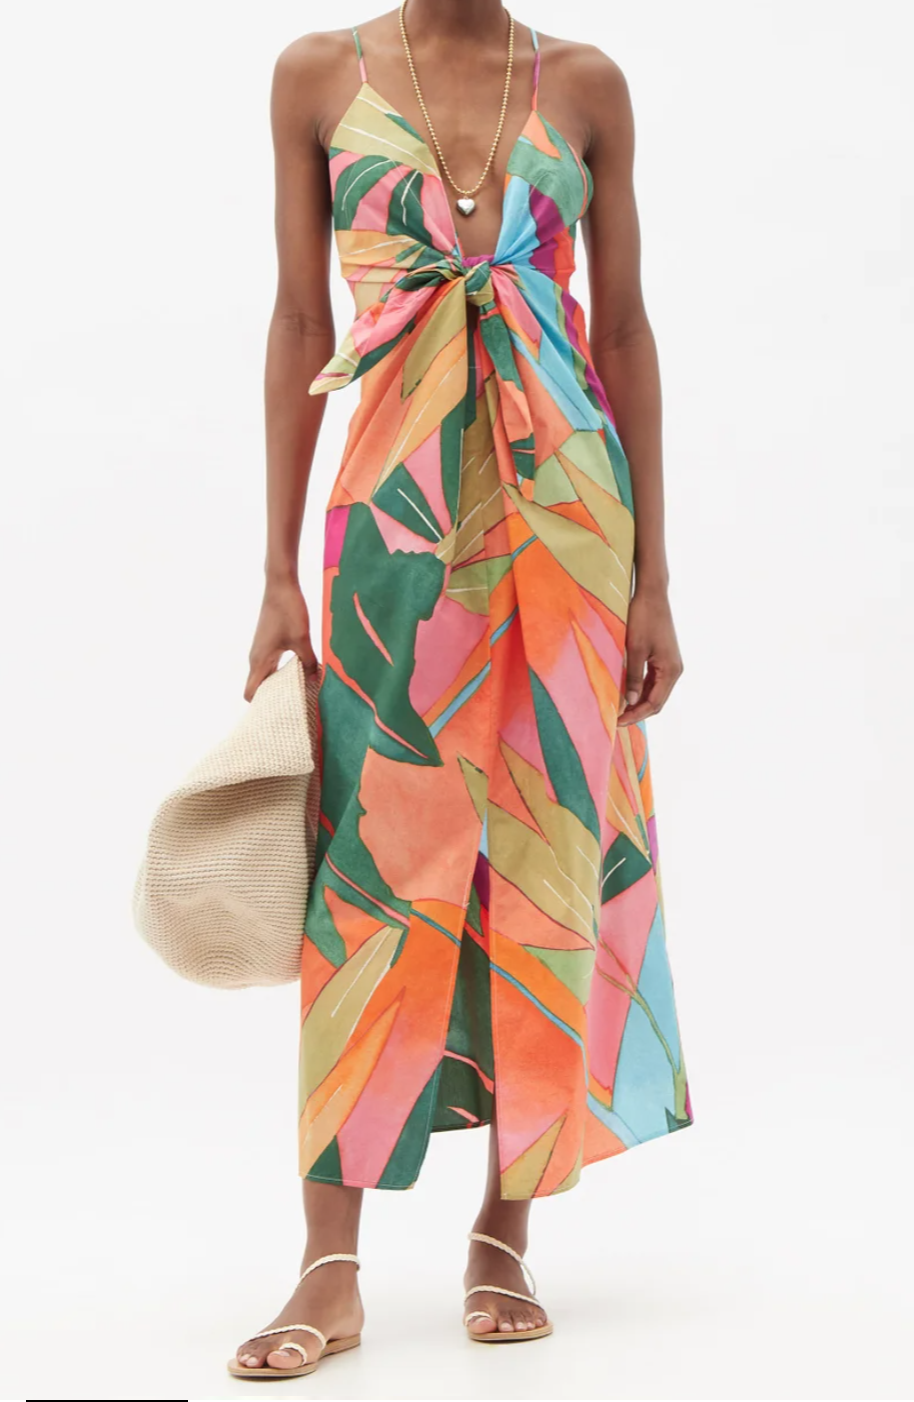 What to wear with your beach maxi dress